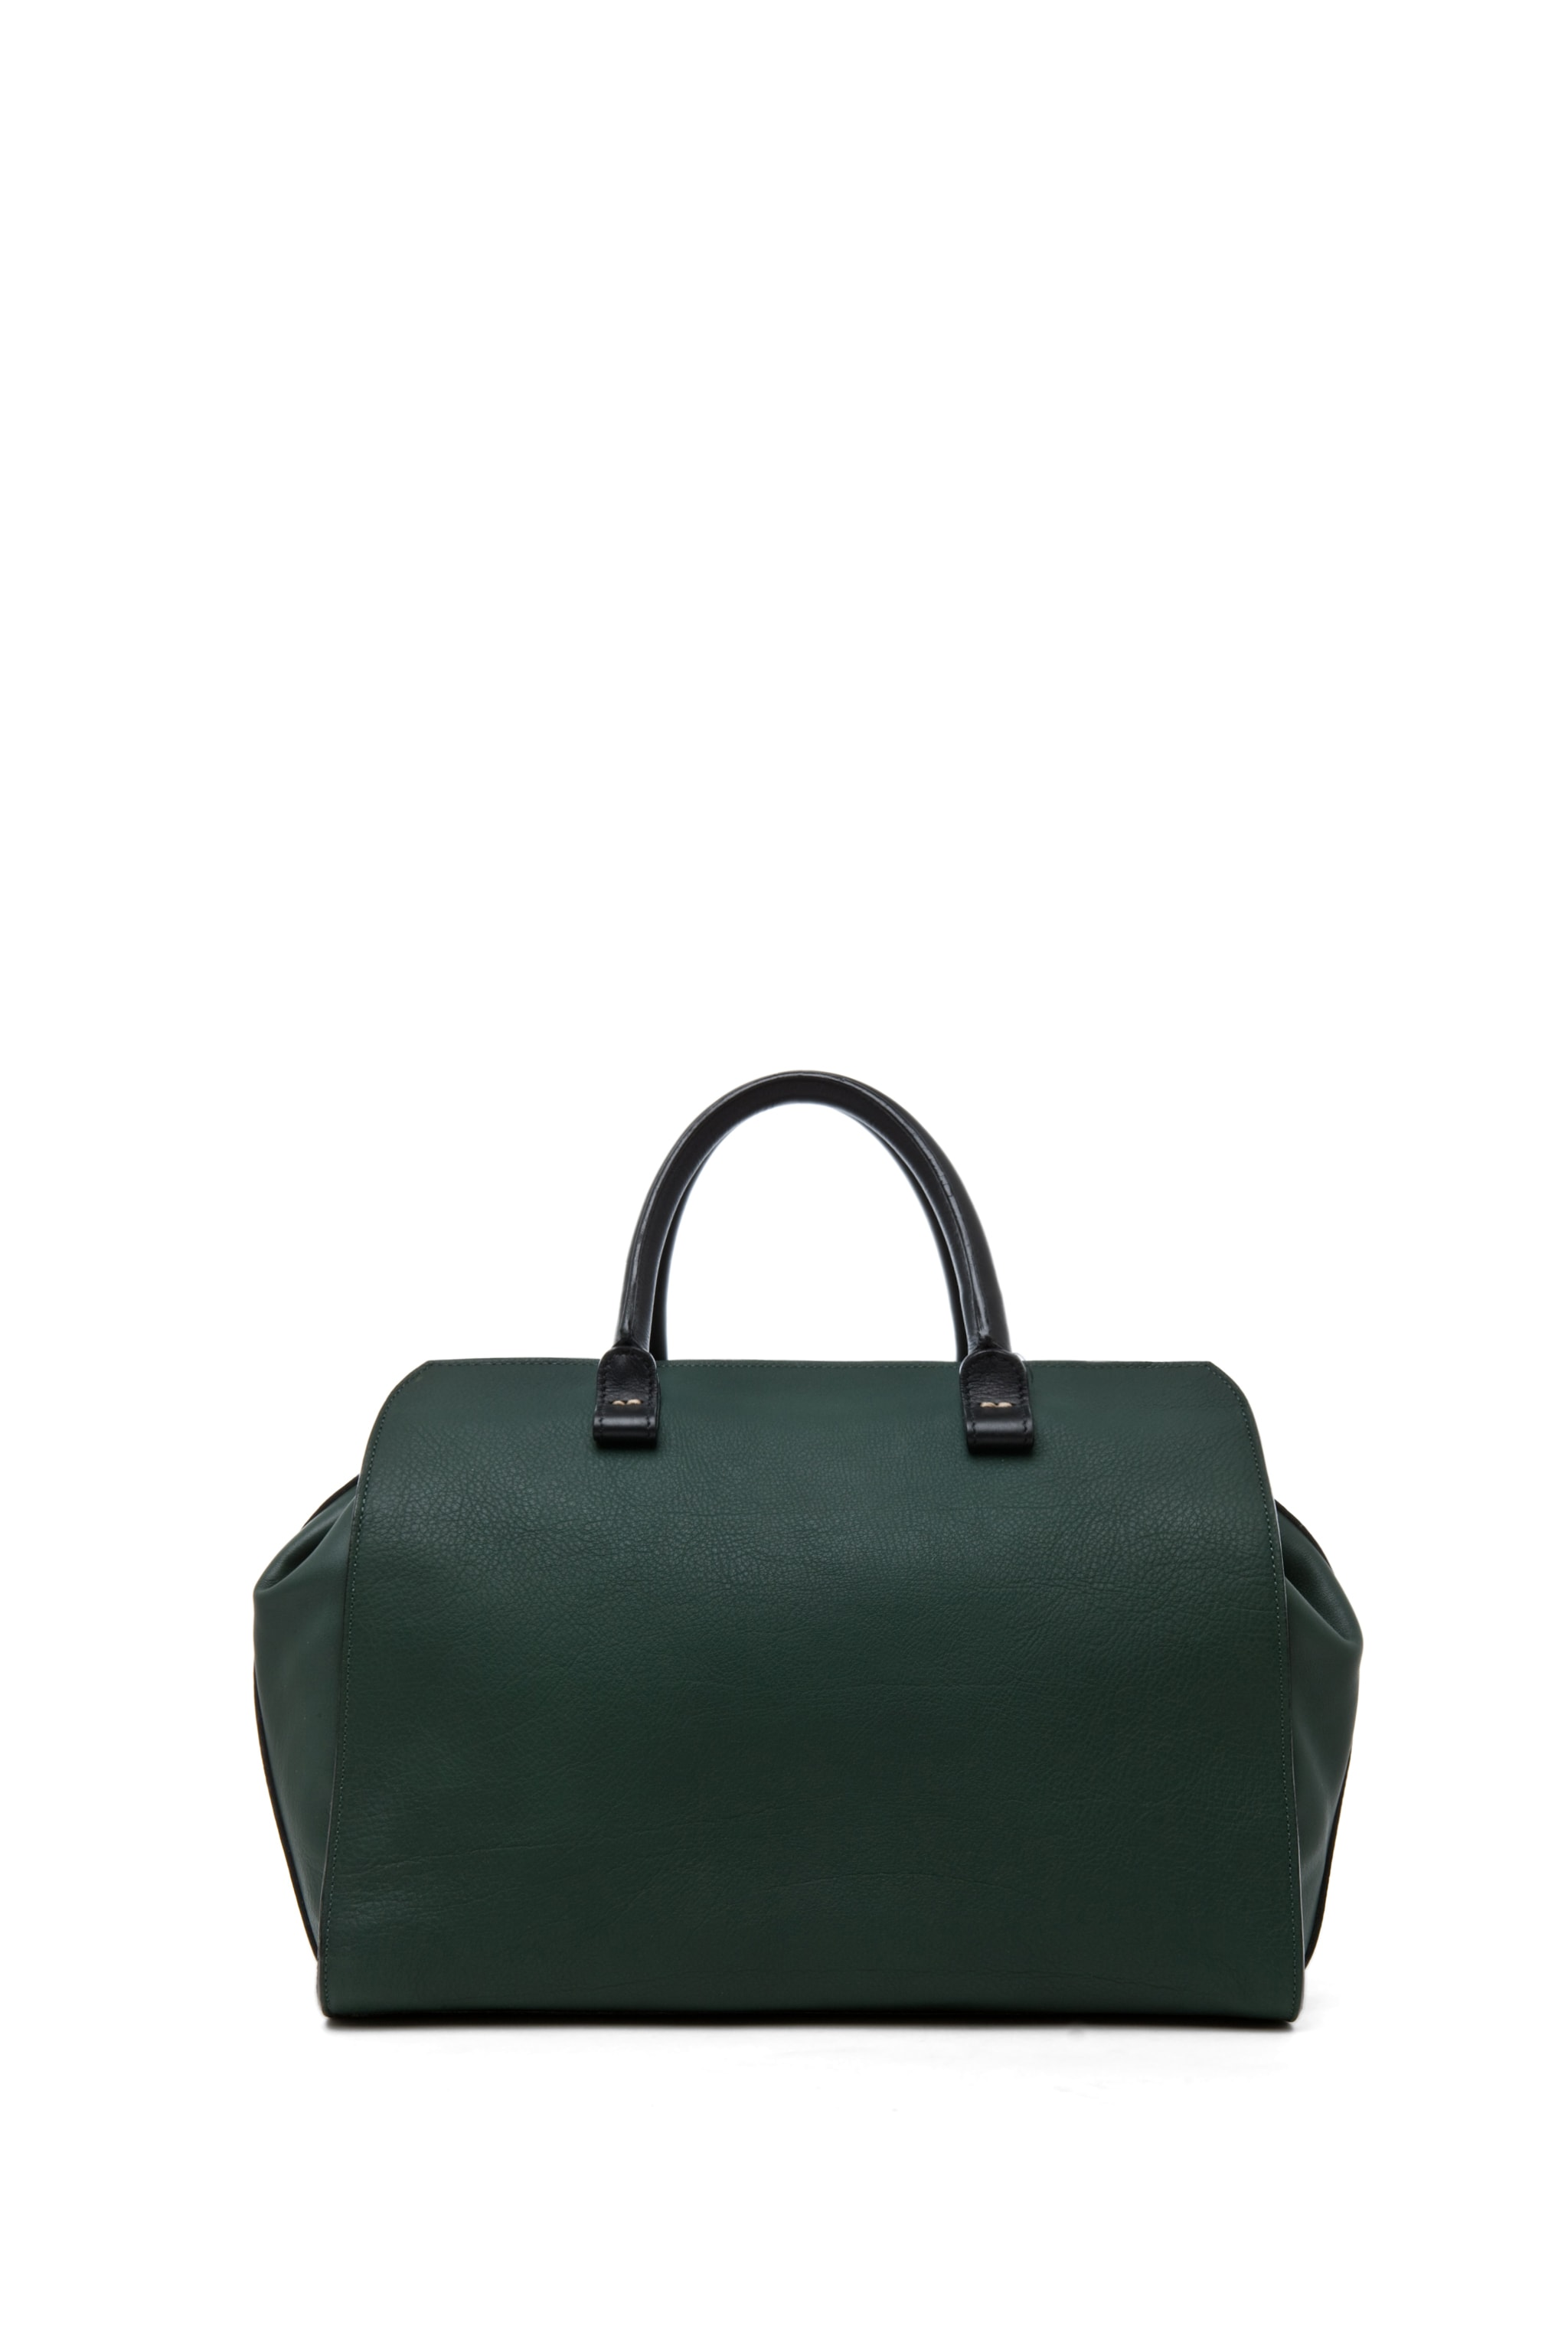 Image 2 of Victoria Beckham The Soft Victoria Bag in Forest Green